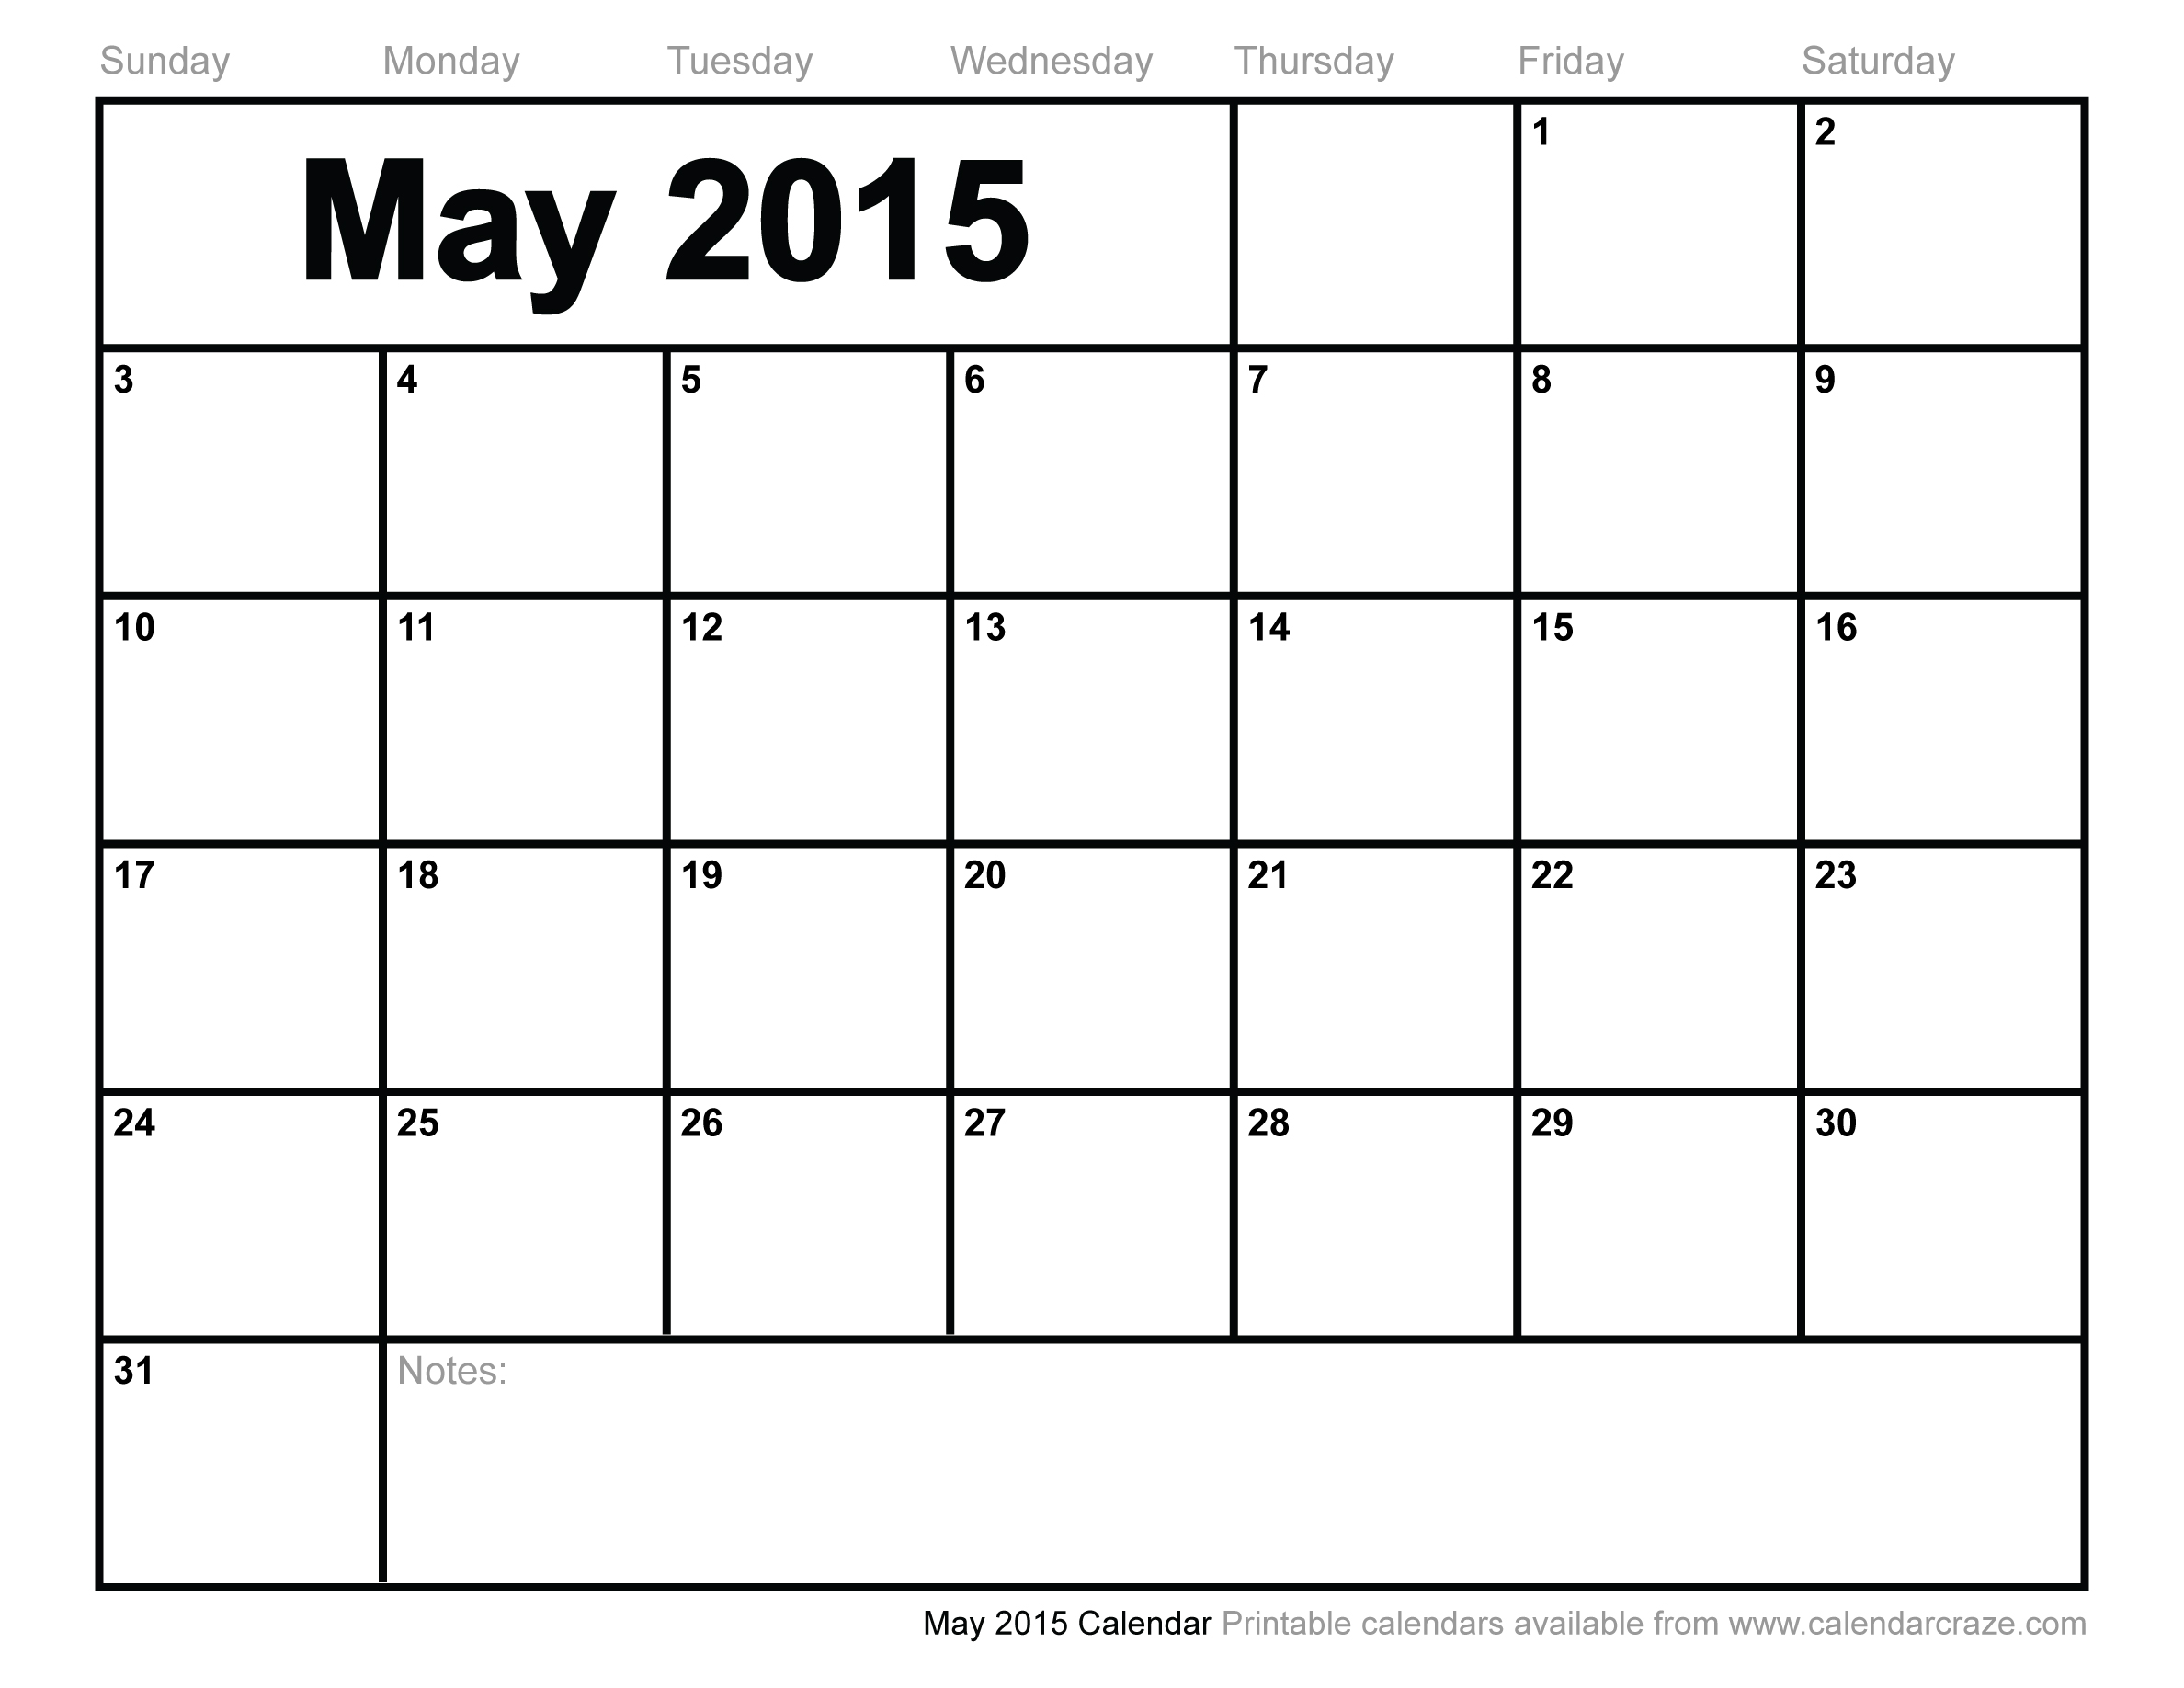 5 Images of May 2015 Calendar Printable Free